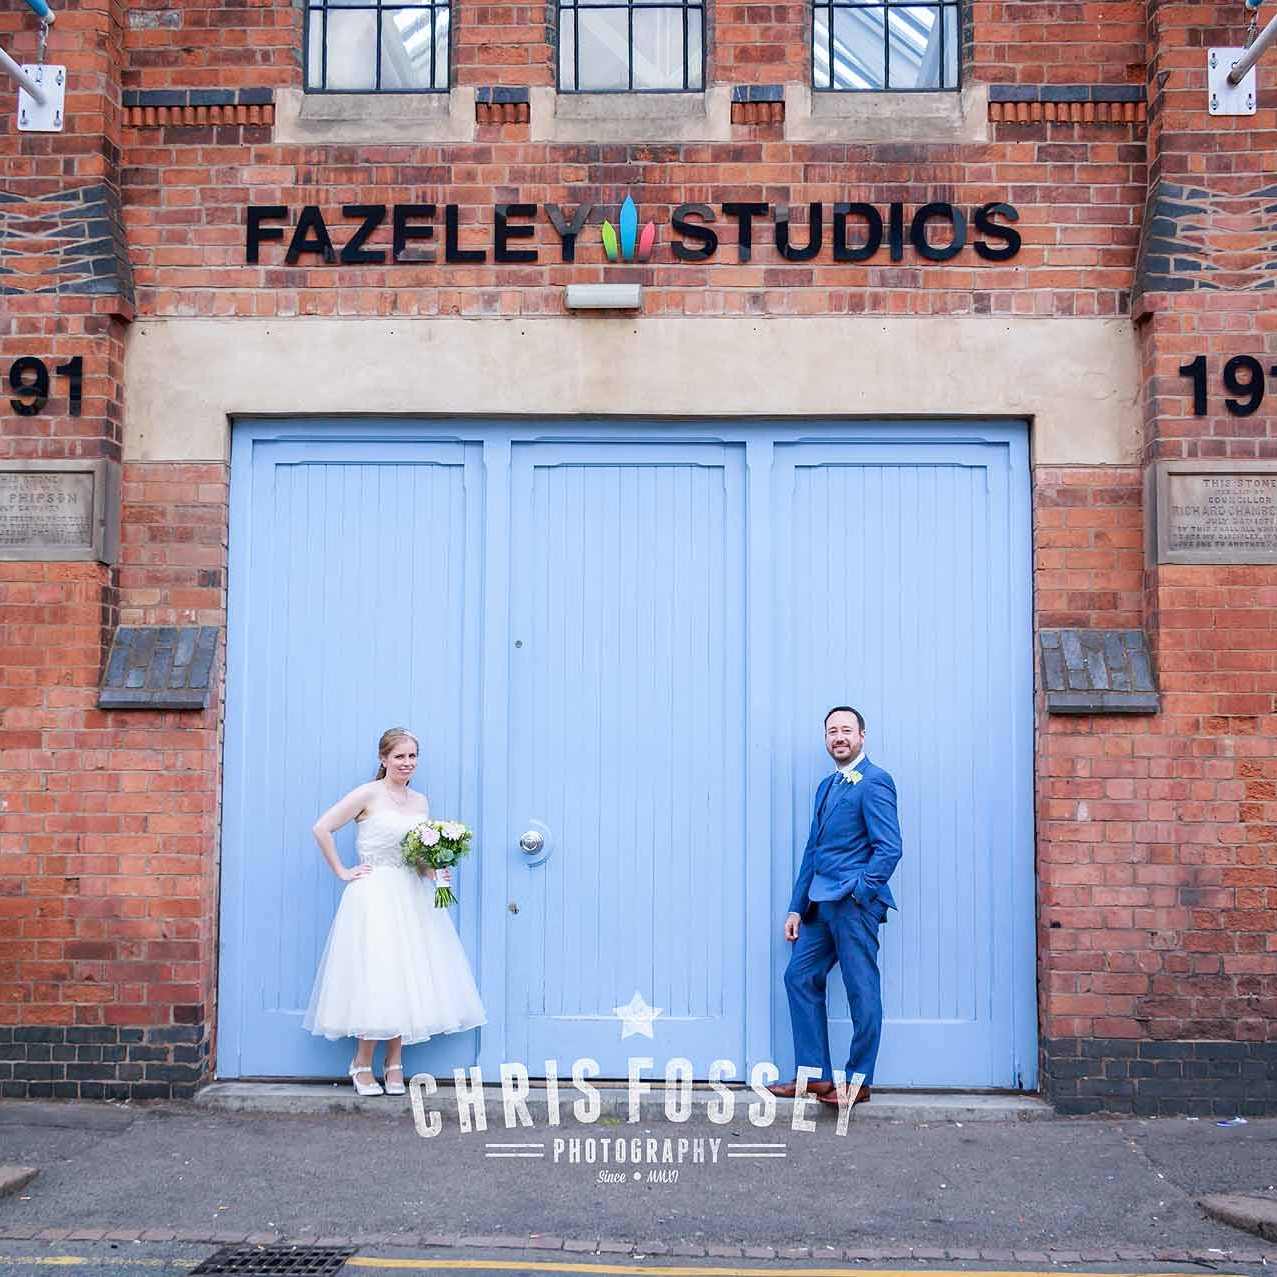 Digbeth-fazeley-studios-wedding-photography